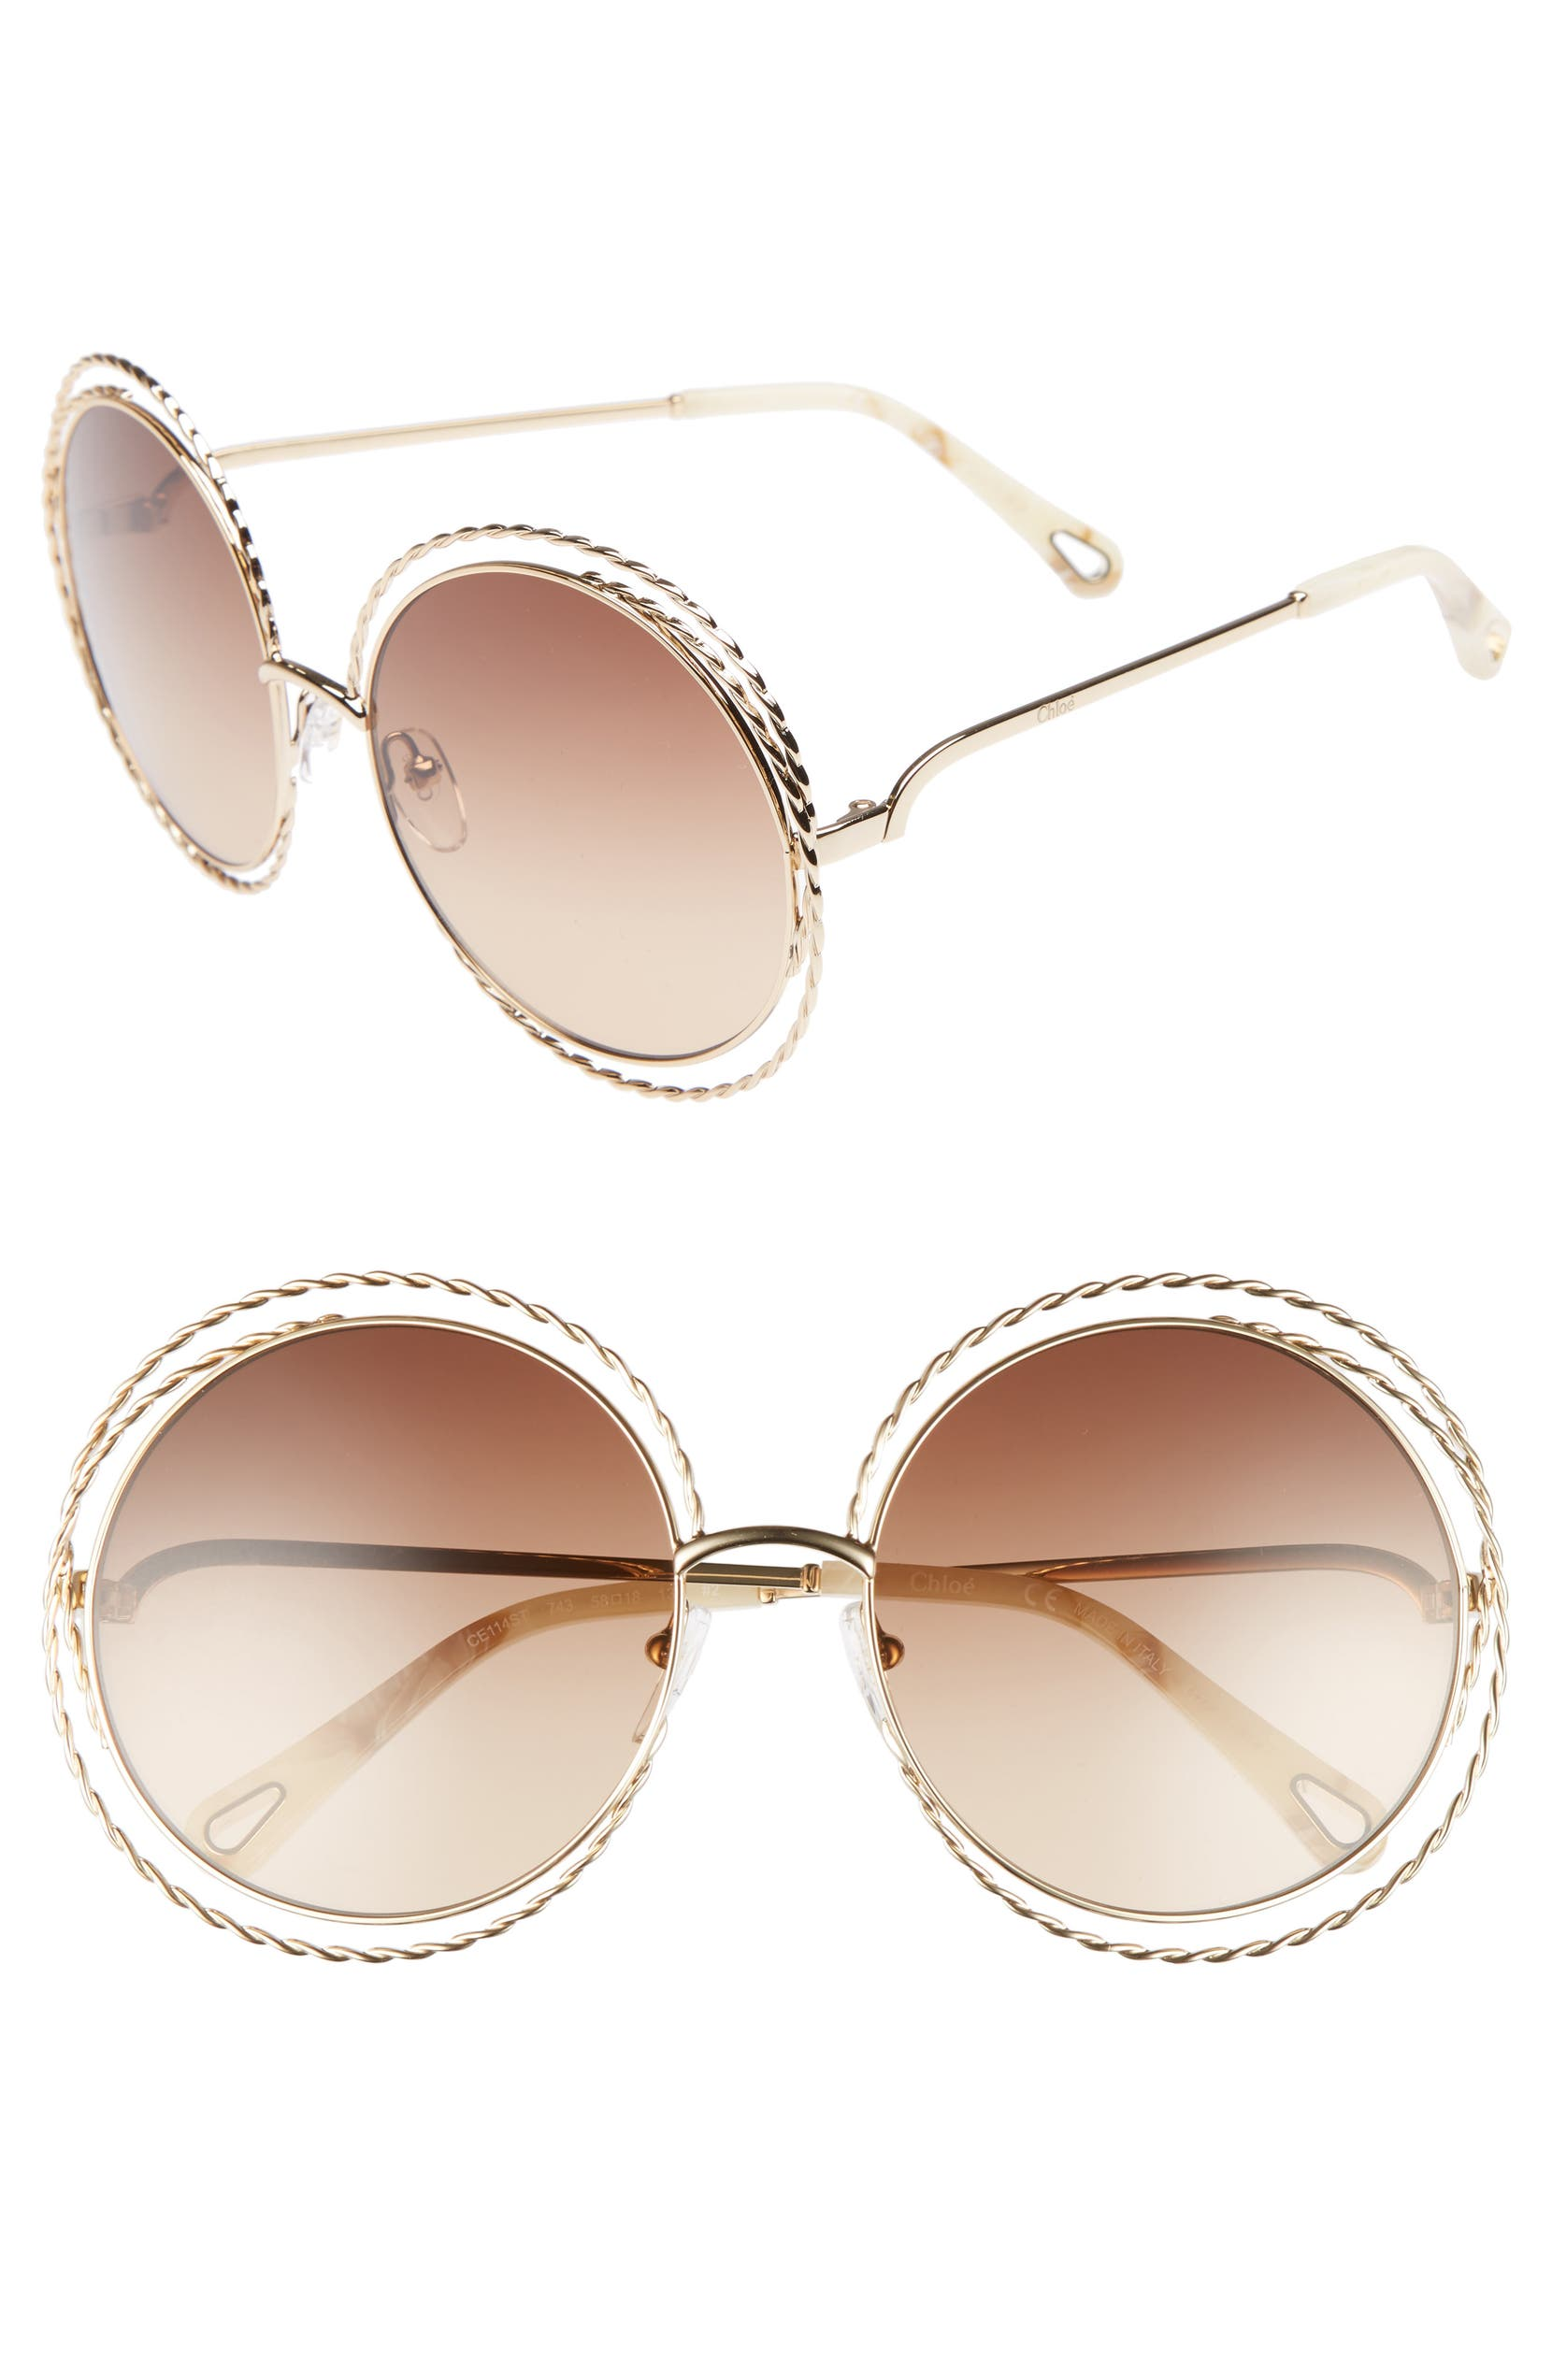 785cfd7ec5 Chloé Carlina Torsade 58mm Round Sunglasses